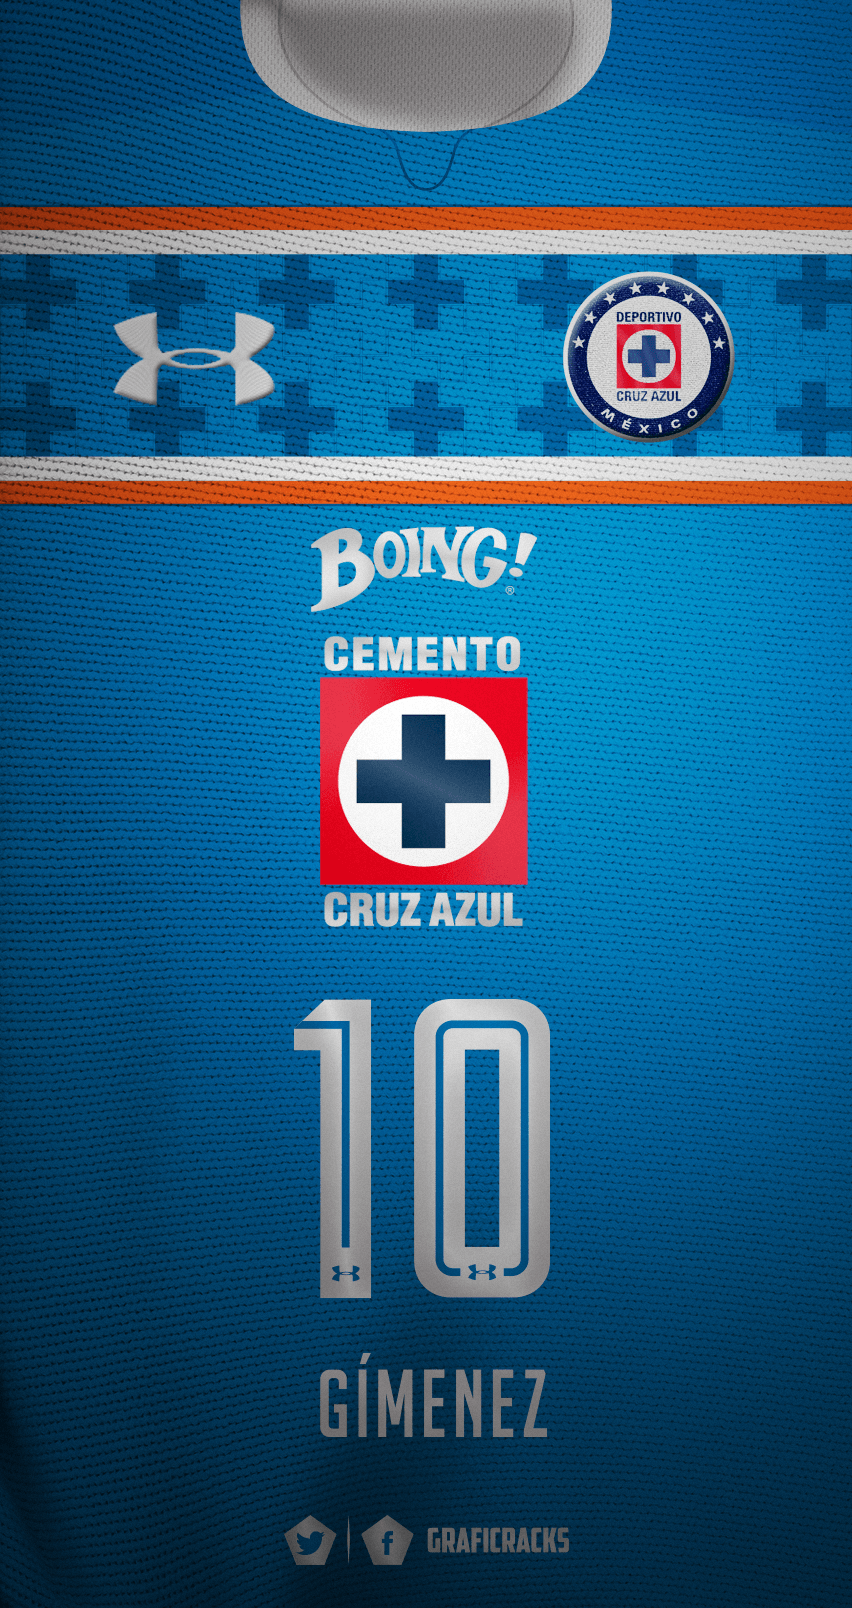 GrafiCrack on Twitter: Cruz Azul Local Chaco Gímenez